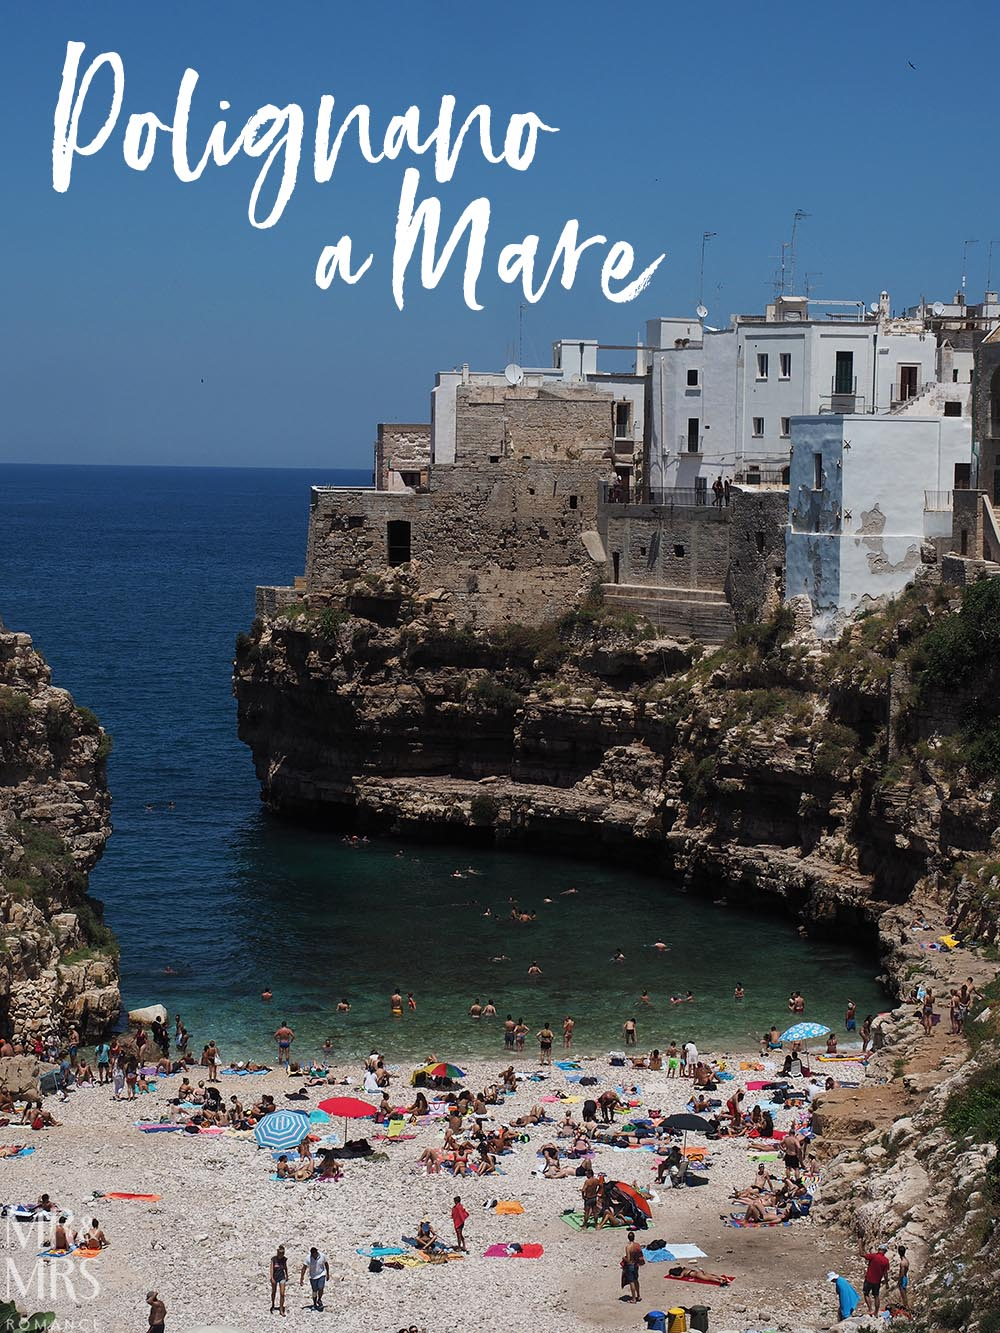 Top 10 towns of Puglia, Italy - Polignano a Mare